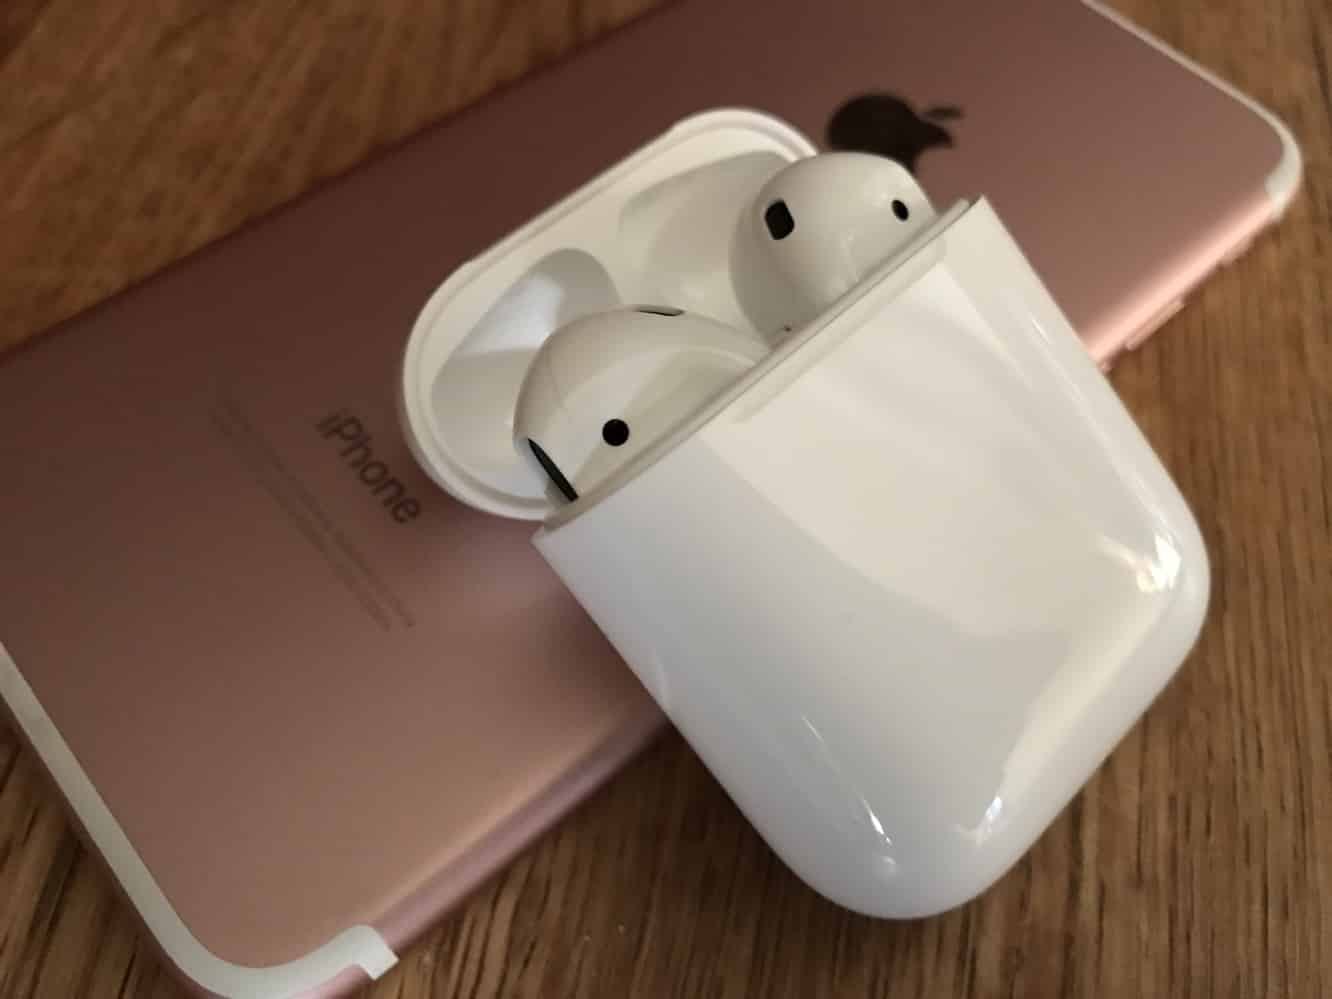 Report: Apple's AirPods top Best Buy sales charts for October